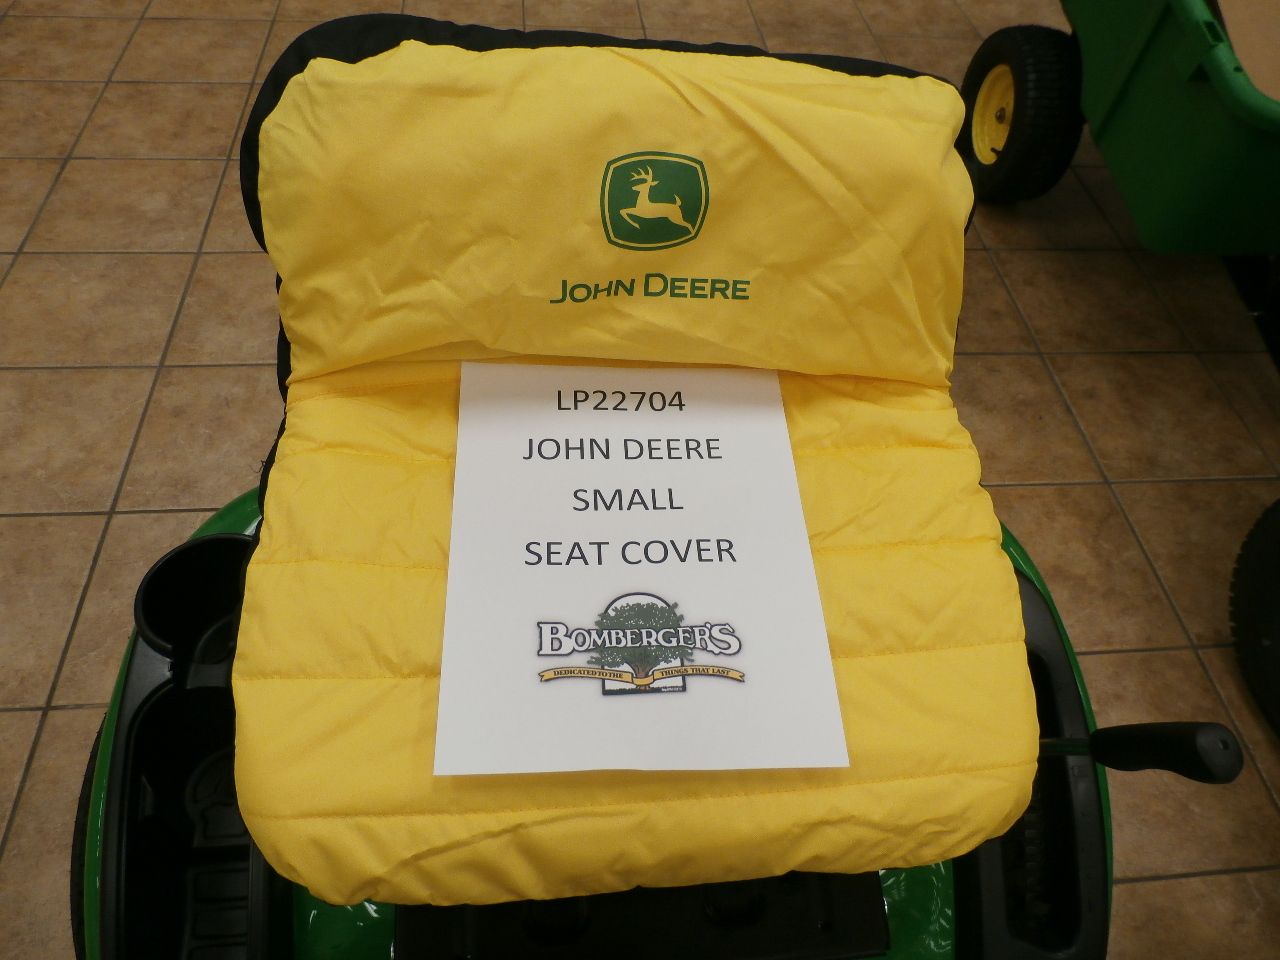 John Deere small seat cover 11 inch LP22704